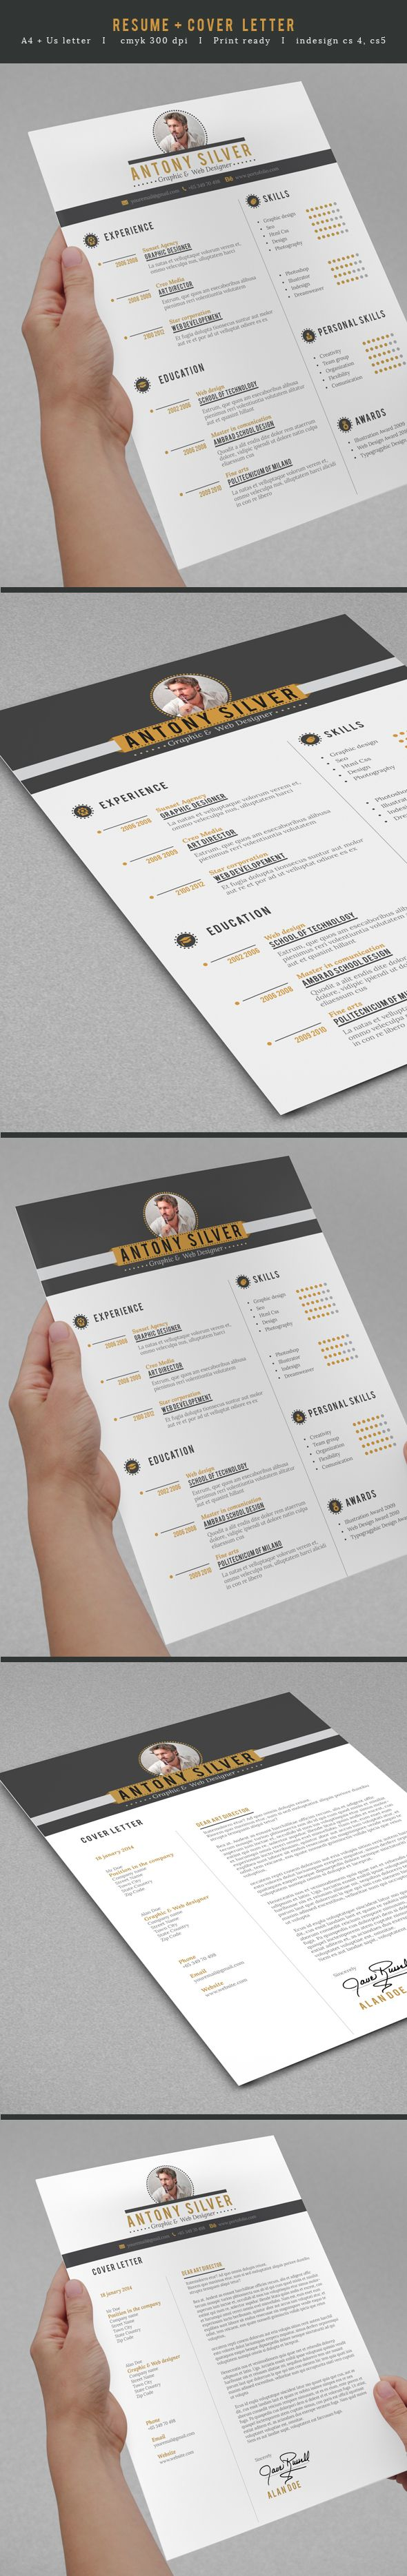 Pretty clean and well formatted resume. For more resume inspirations click here: http://www.pinterest.com/sheppardaaron/-design-resumes/ ... Creative Resume Design, Resume Style, Resume Design, Curriculum Vitae, CV, Resume Template, Resumes, Resume Format.